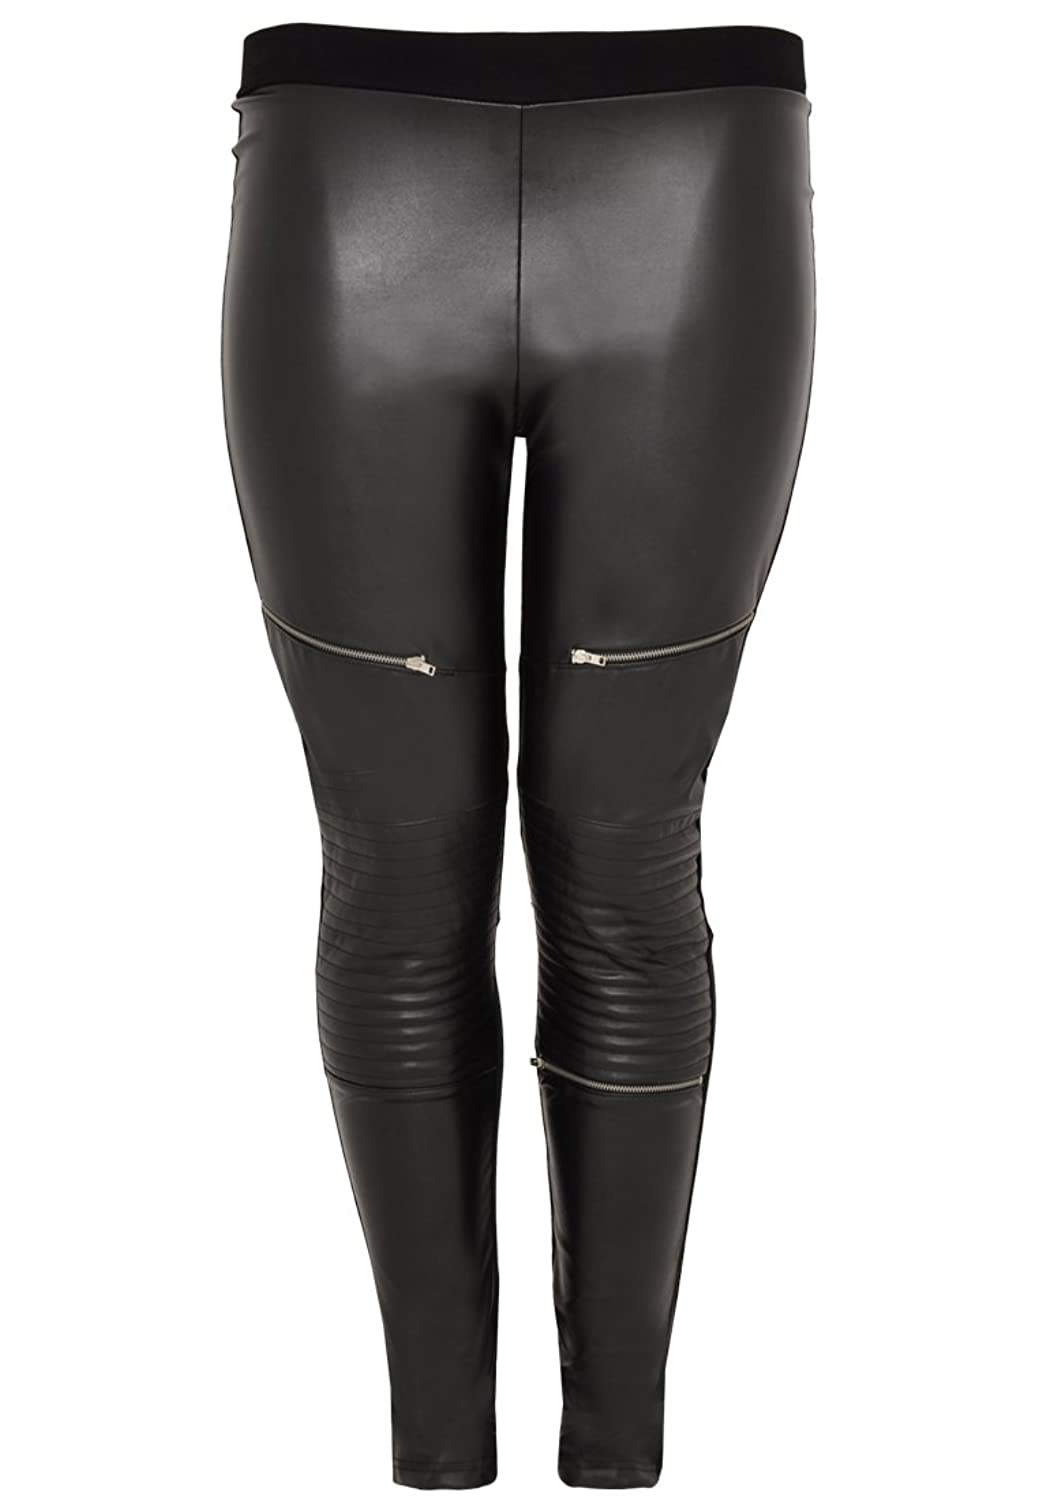 Yoek Damen Leggings aus Kunstleder Plus Size